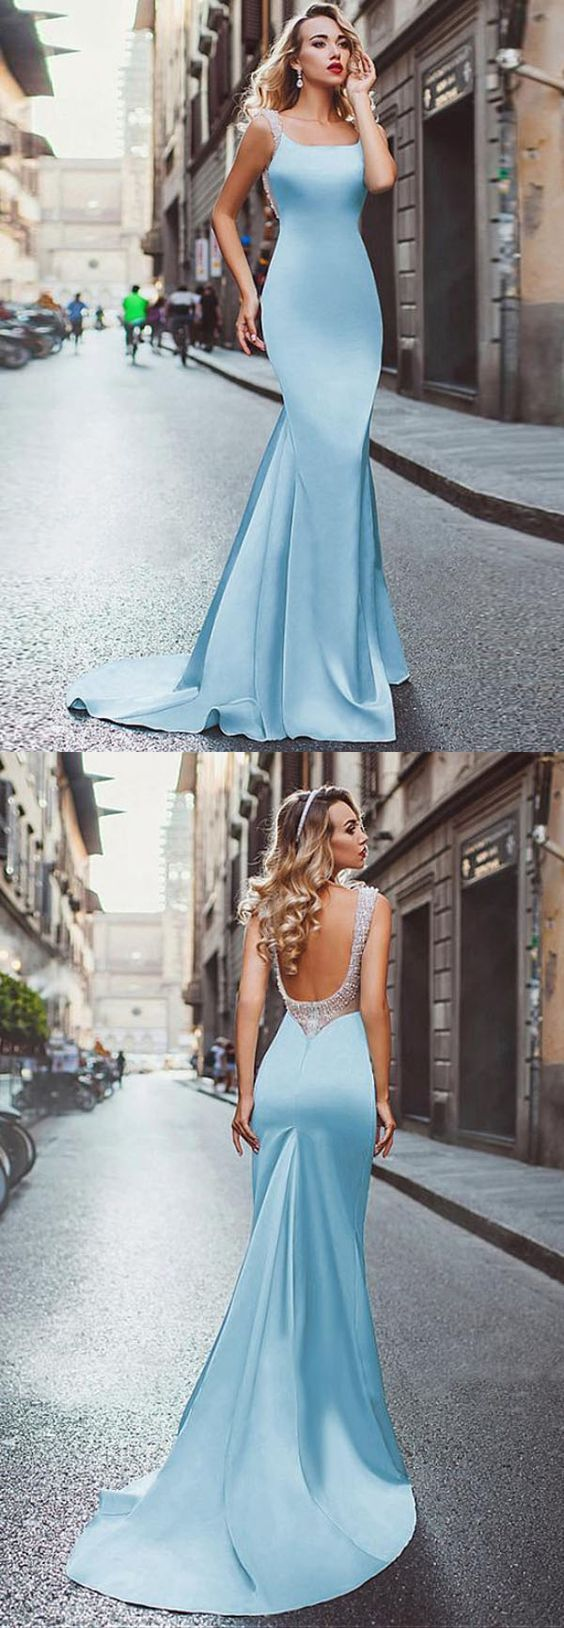 Mermaid scoop sweep train light blue stretch satin backless beaded